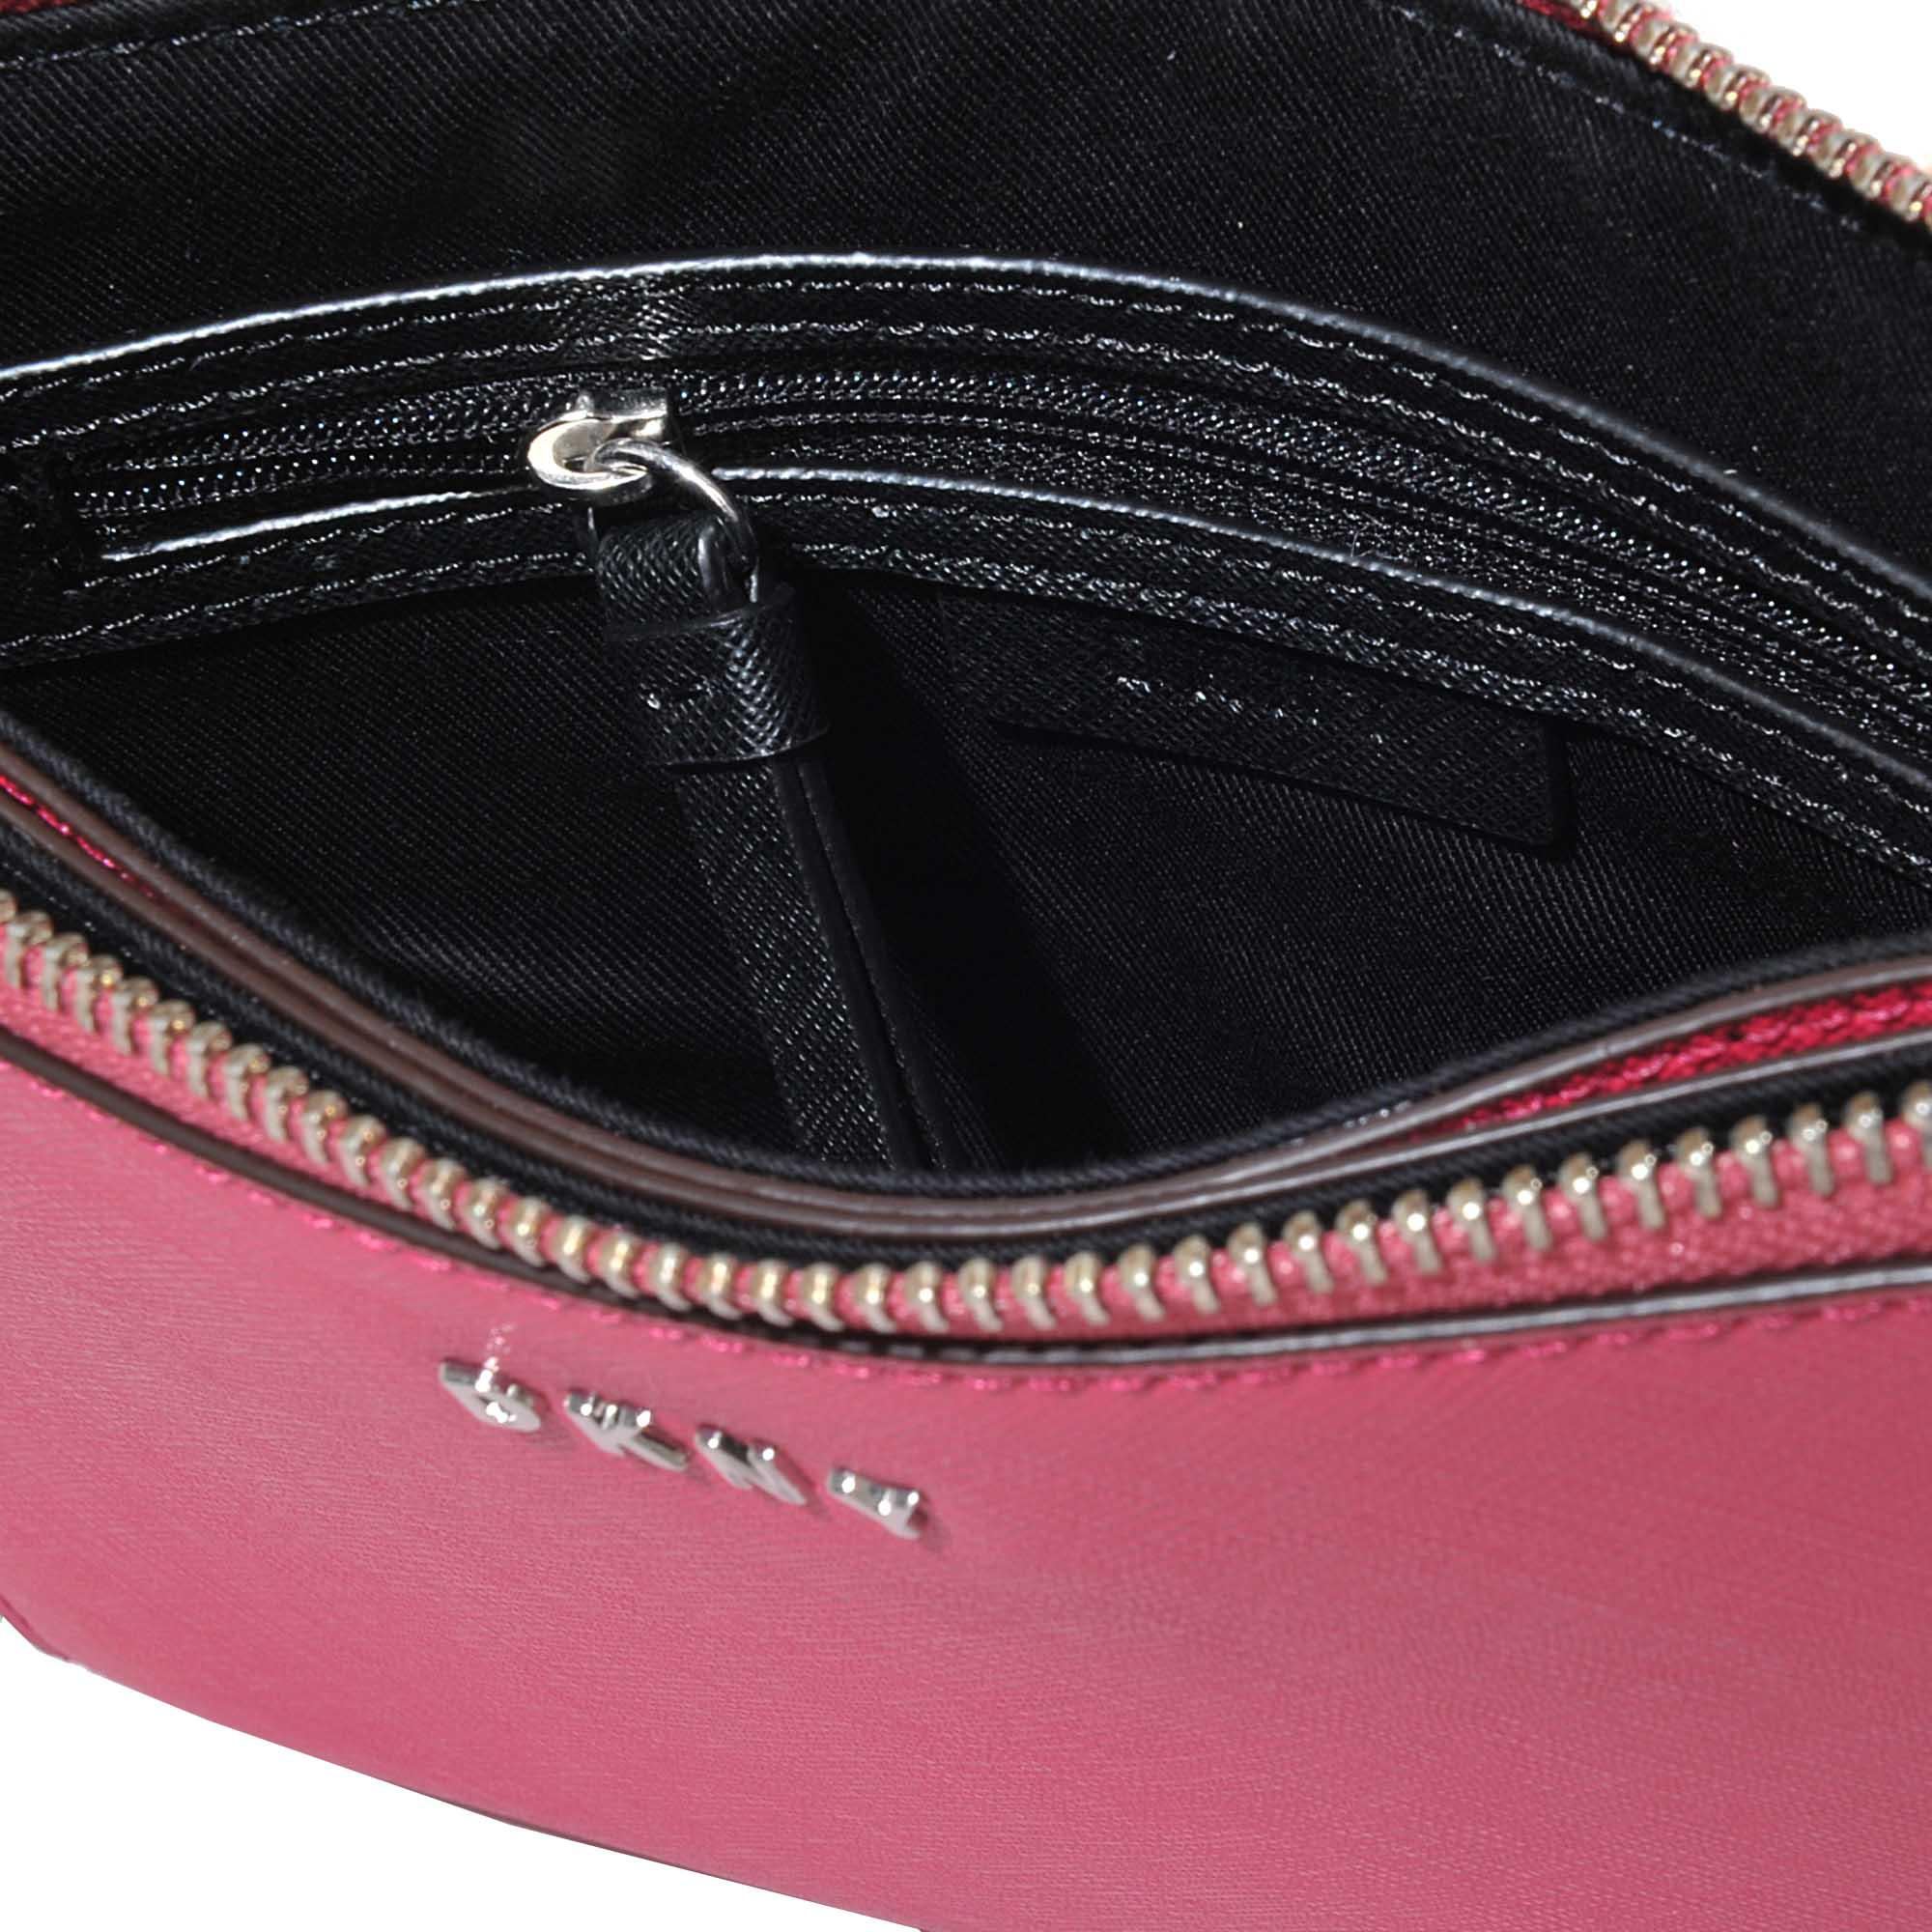 DKNY Leather Bryant Park Flat Top Zip Crossbody in Pink